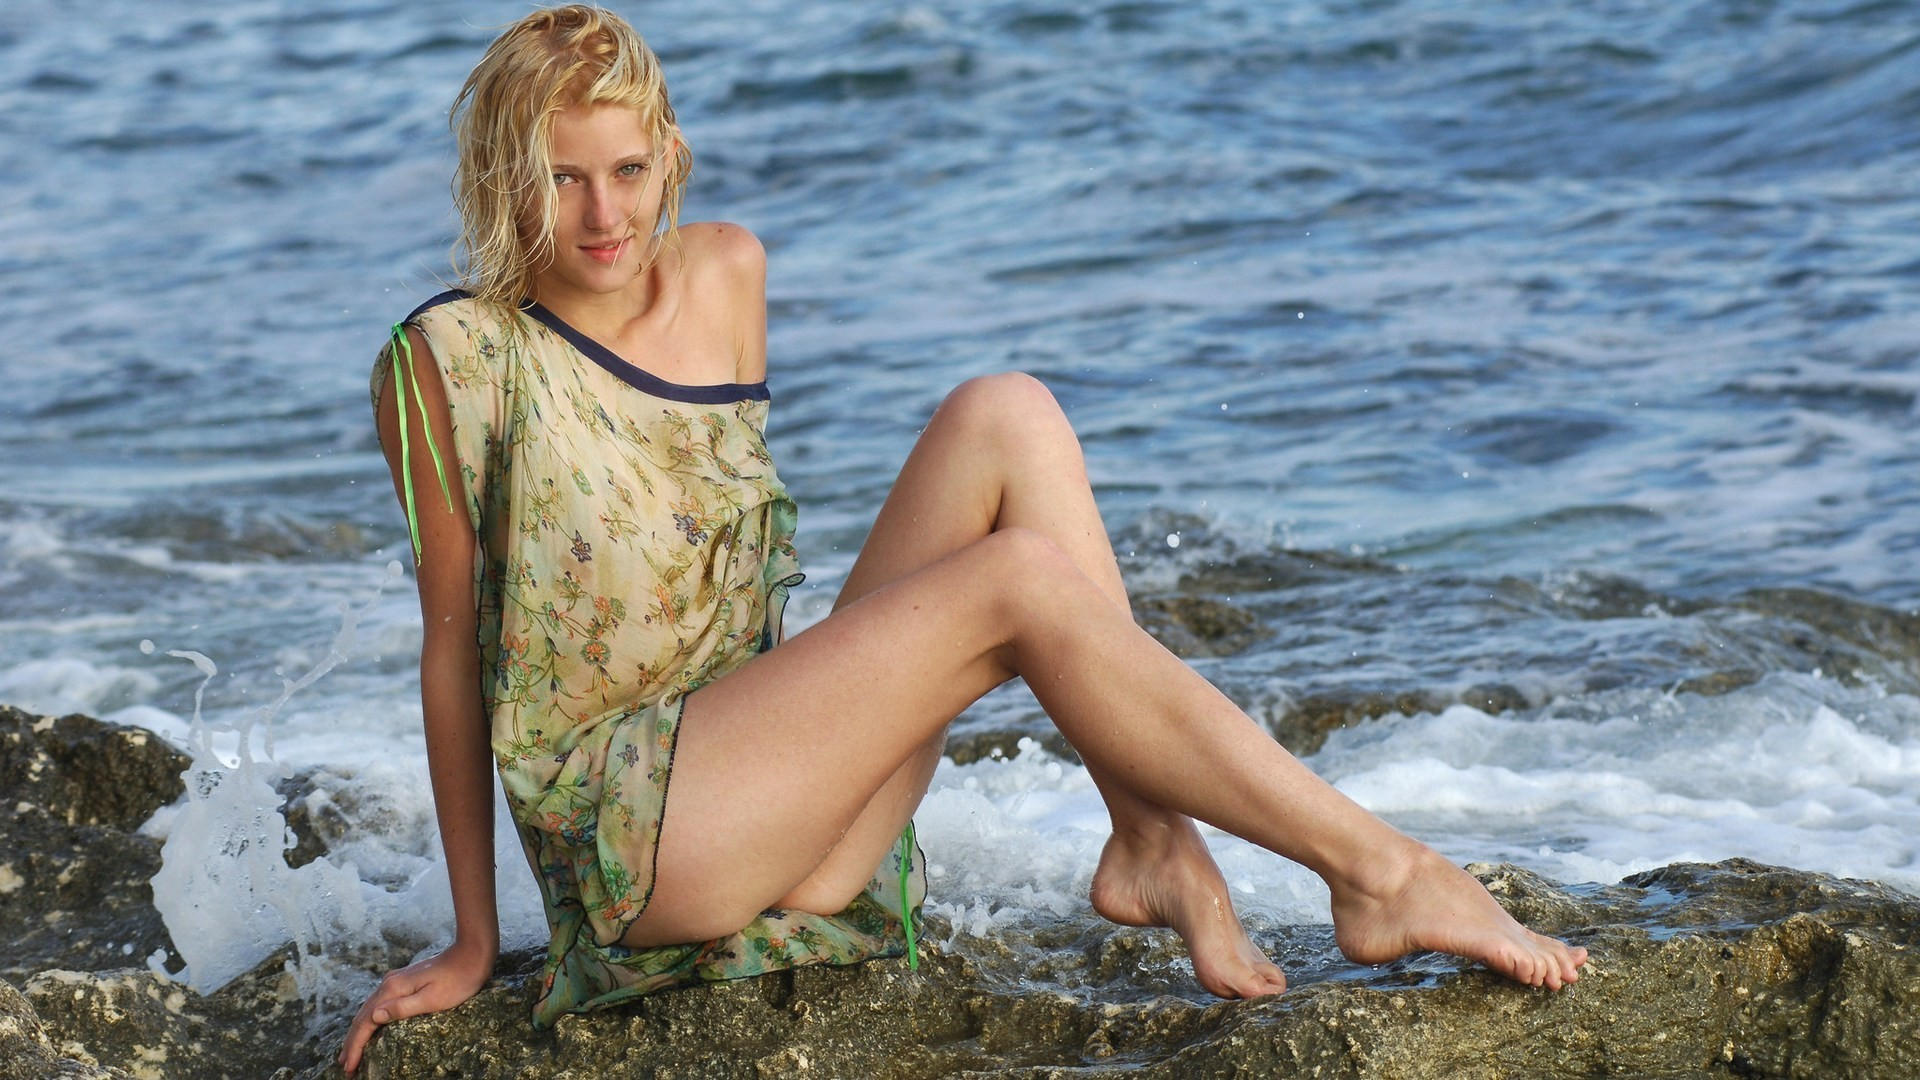 blondes legs woman ocean HD Wallpaper